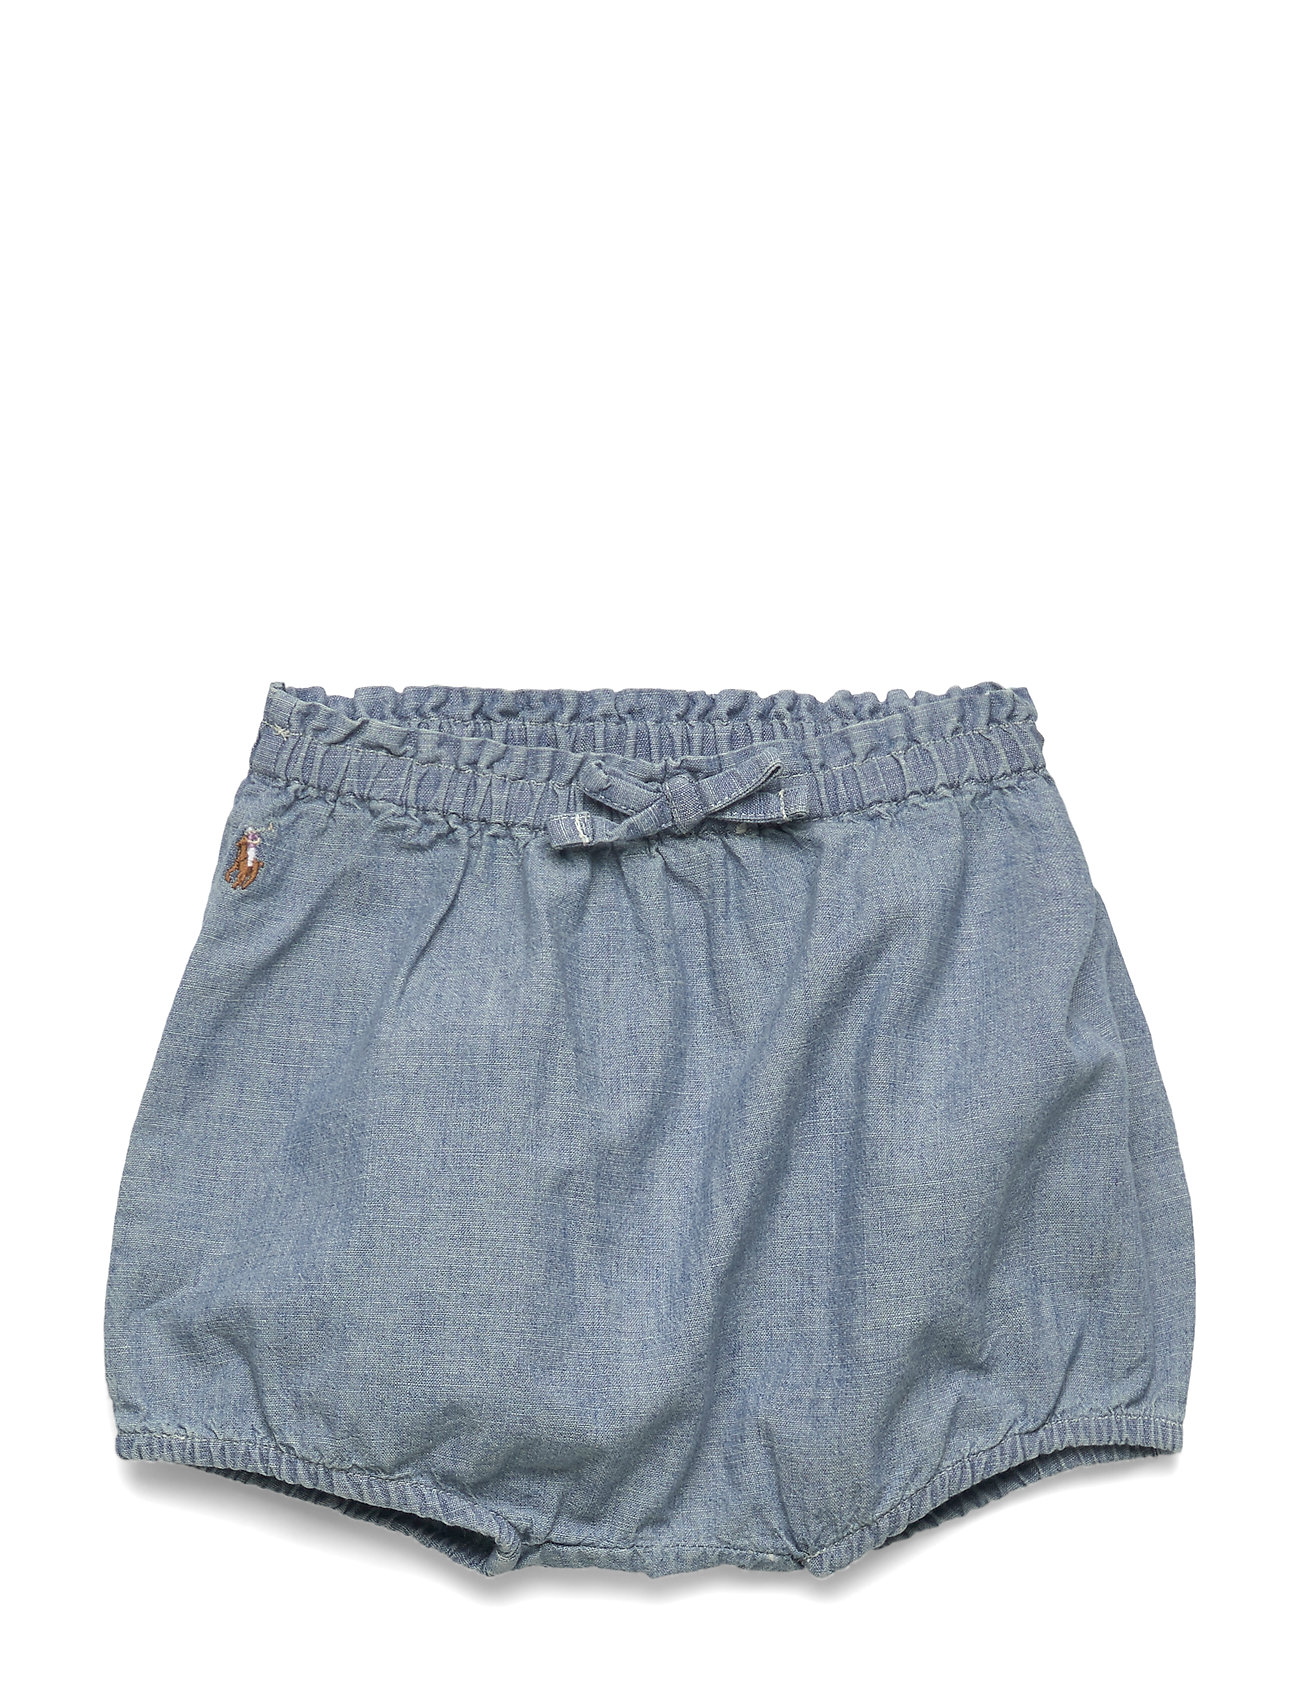 Ralph Lauren Baby Chambray Bloomer Short - CHAMBRAY